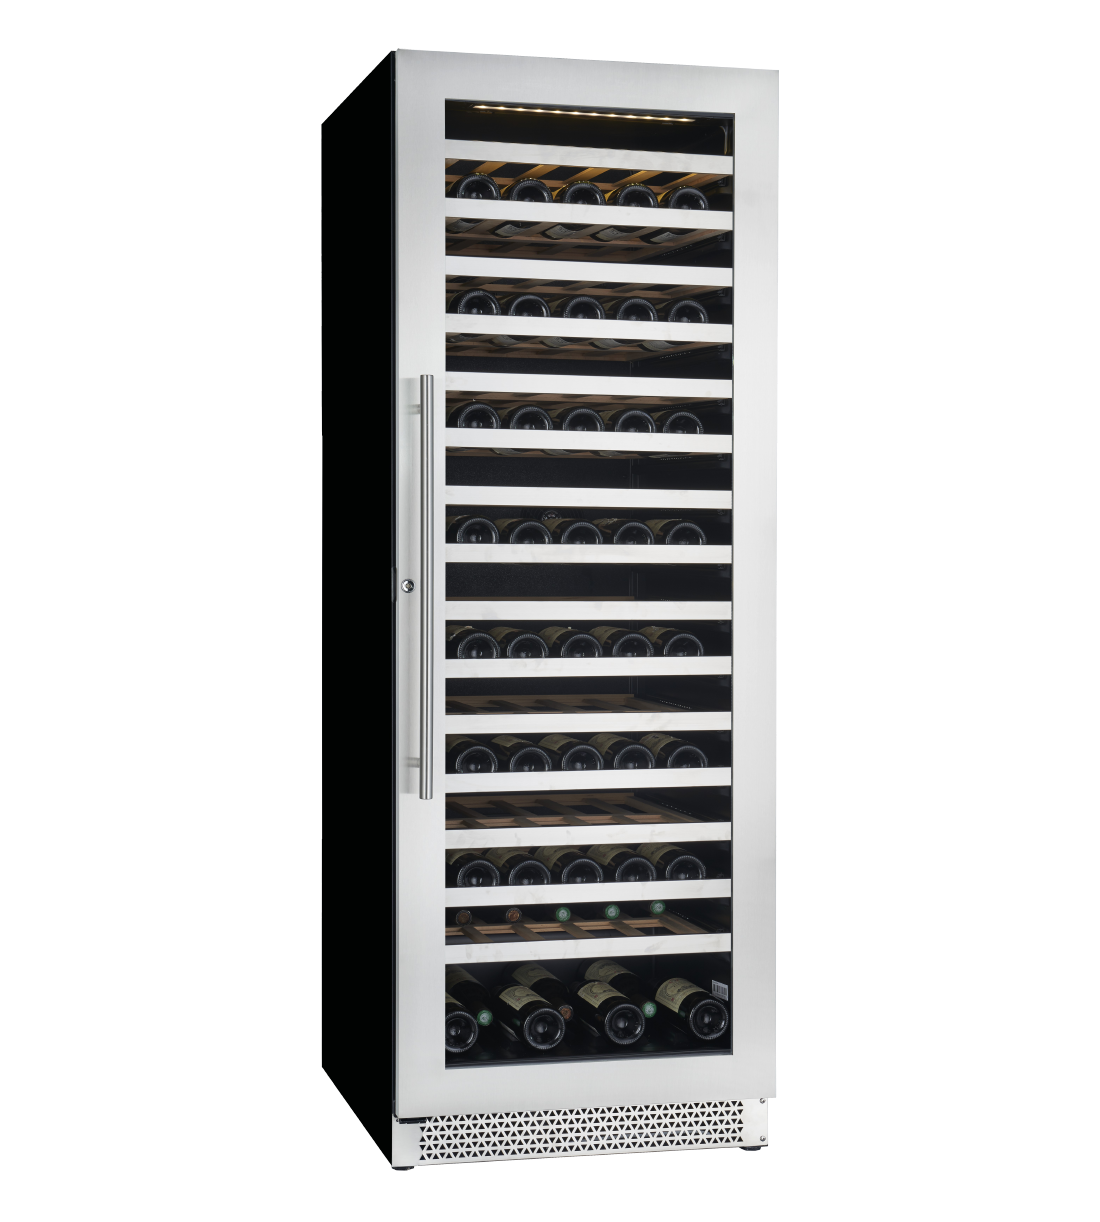 Cavavin Specialized refrigeration 68inch in Stainless Steel color showcased by Corbeil Electro Store